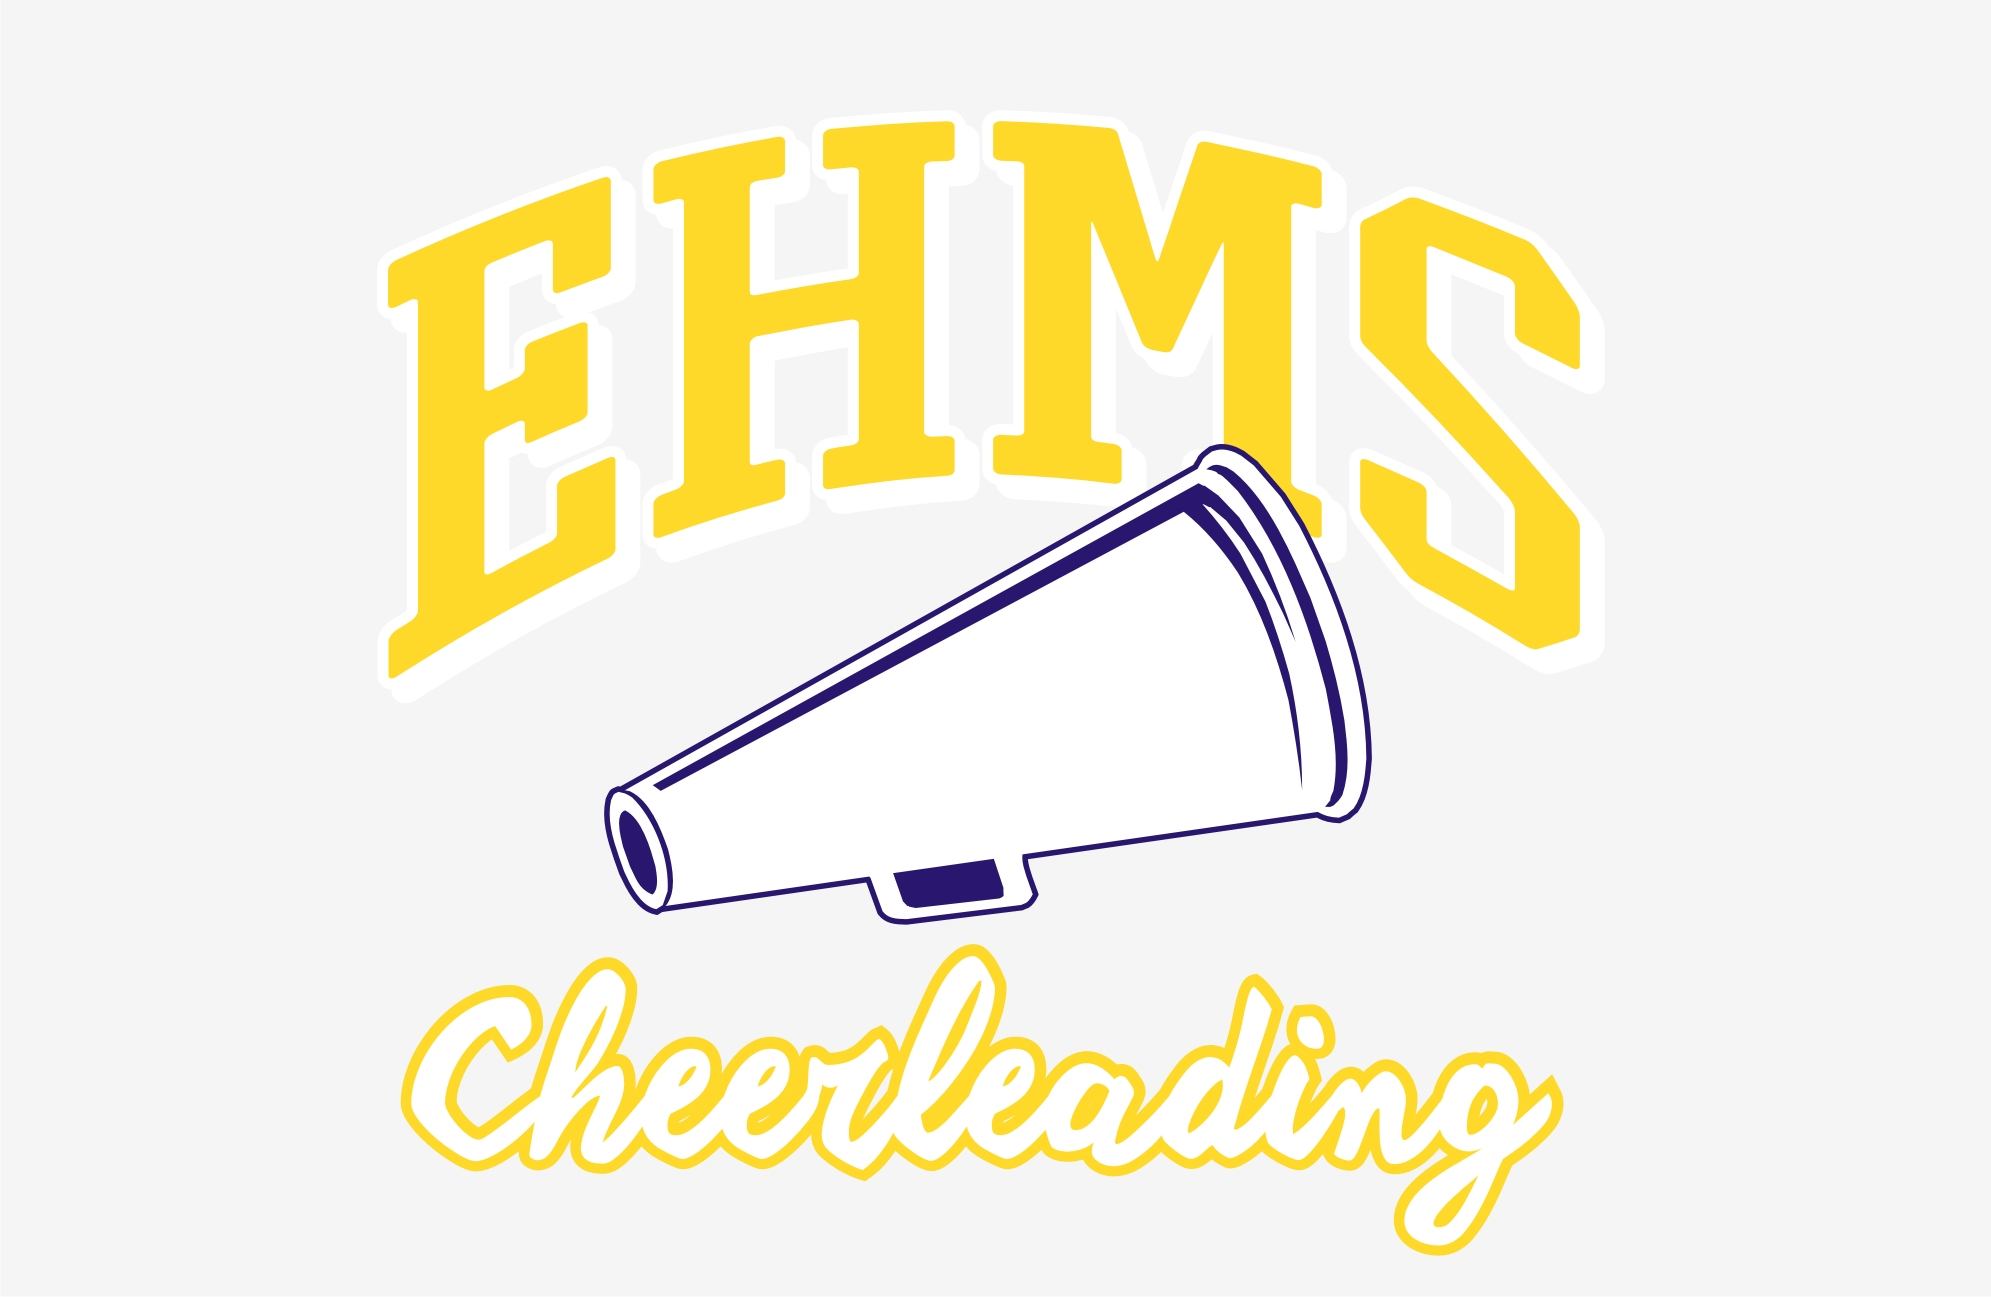 EHMS Cheerleading